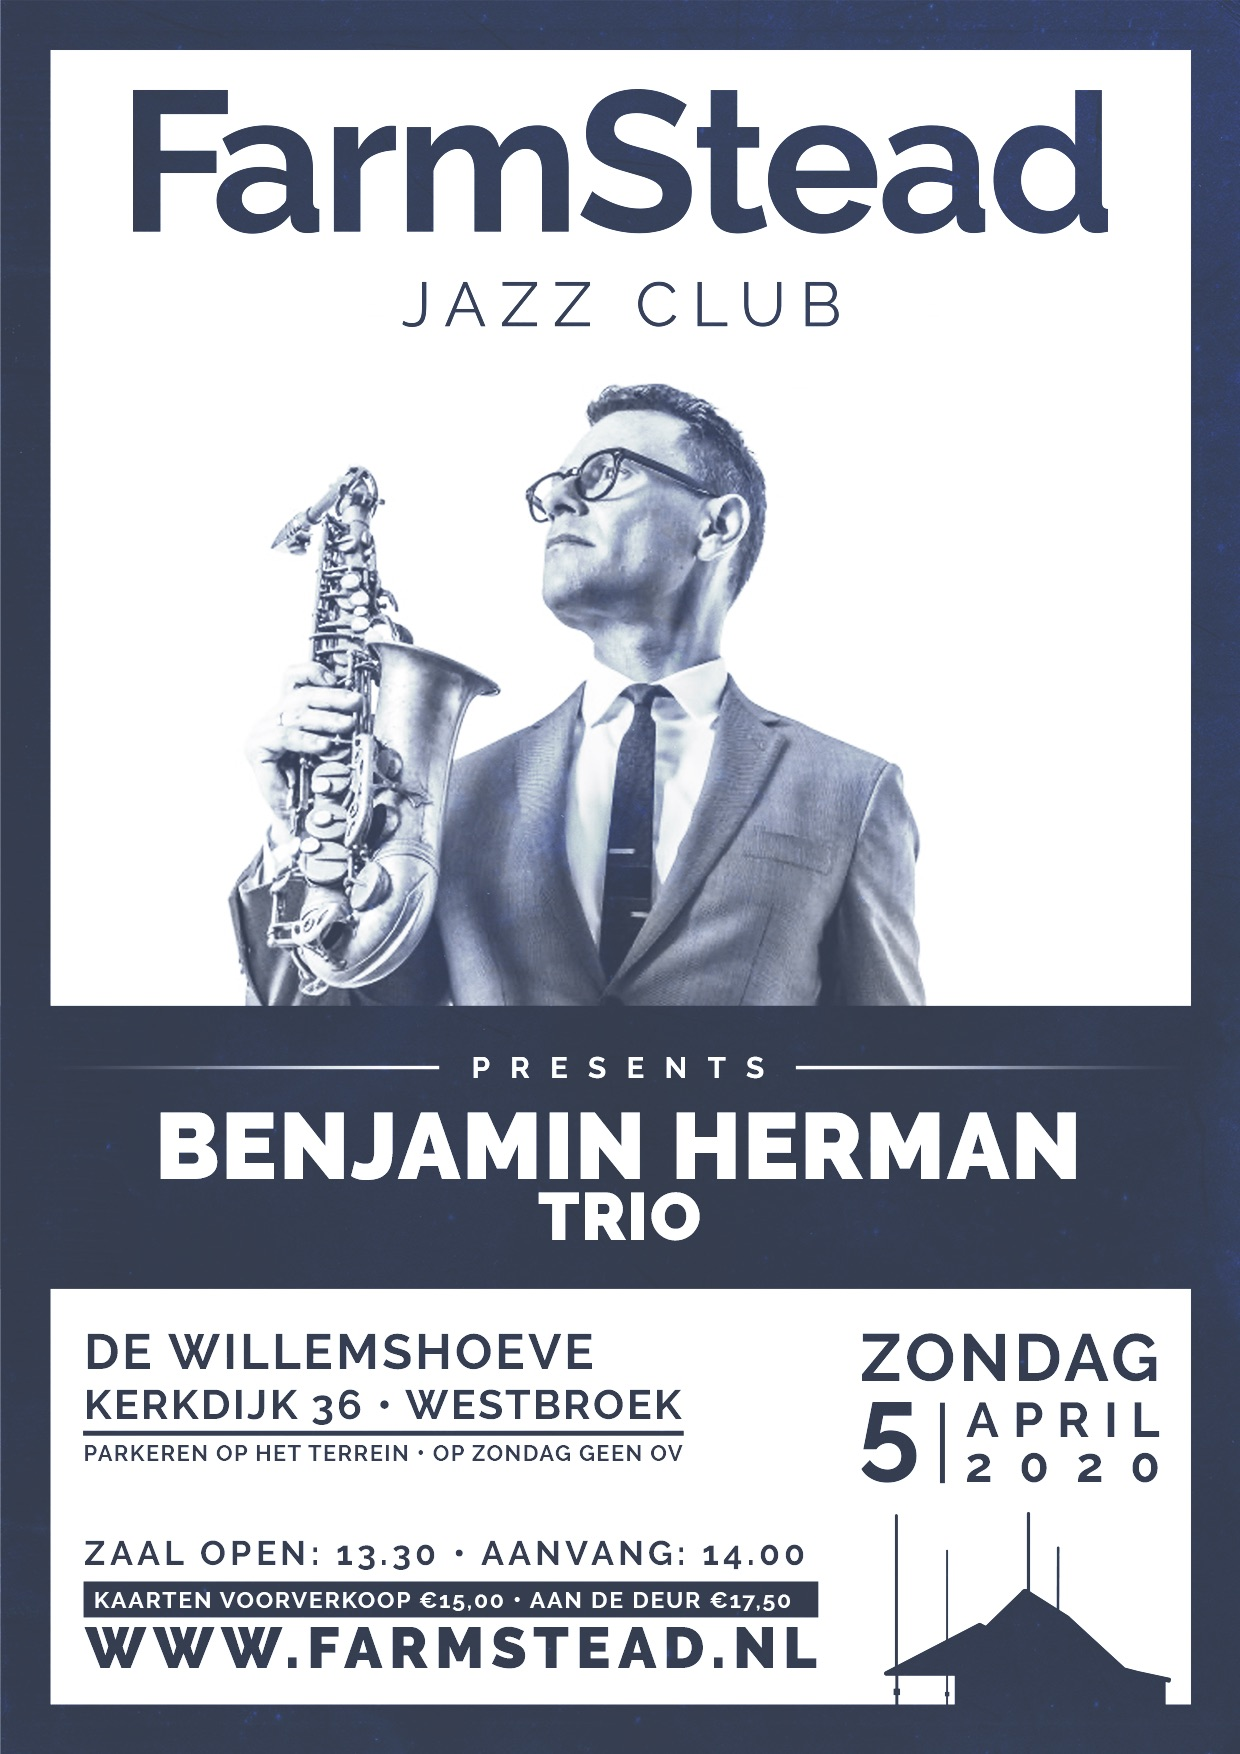 FarmStead Jazz Club presents: Benjamin Herman Trio